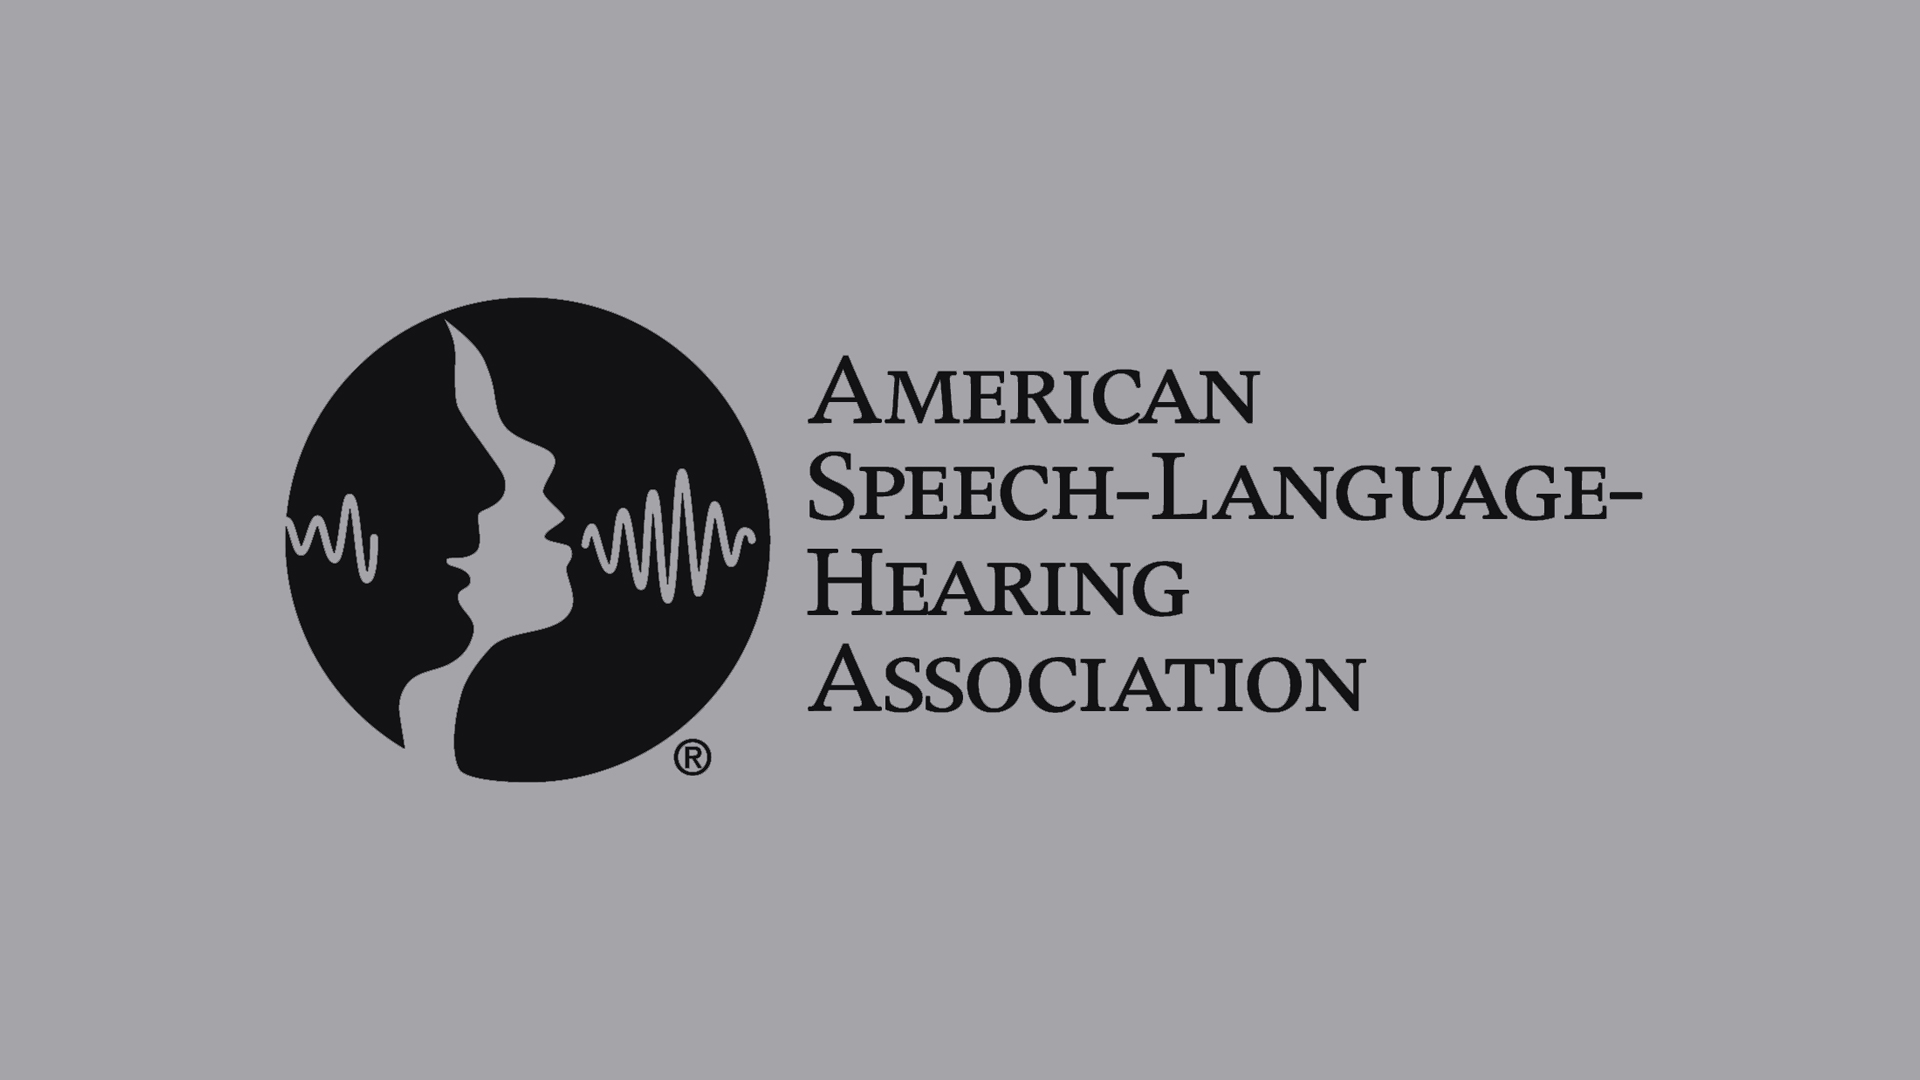 ASHA: American Speech-Language Hearing Association